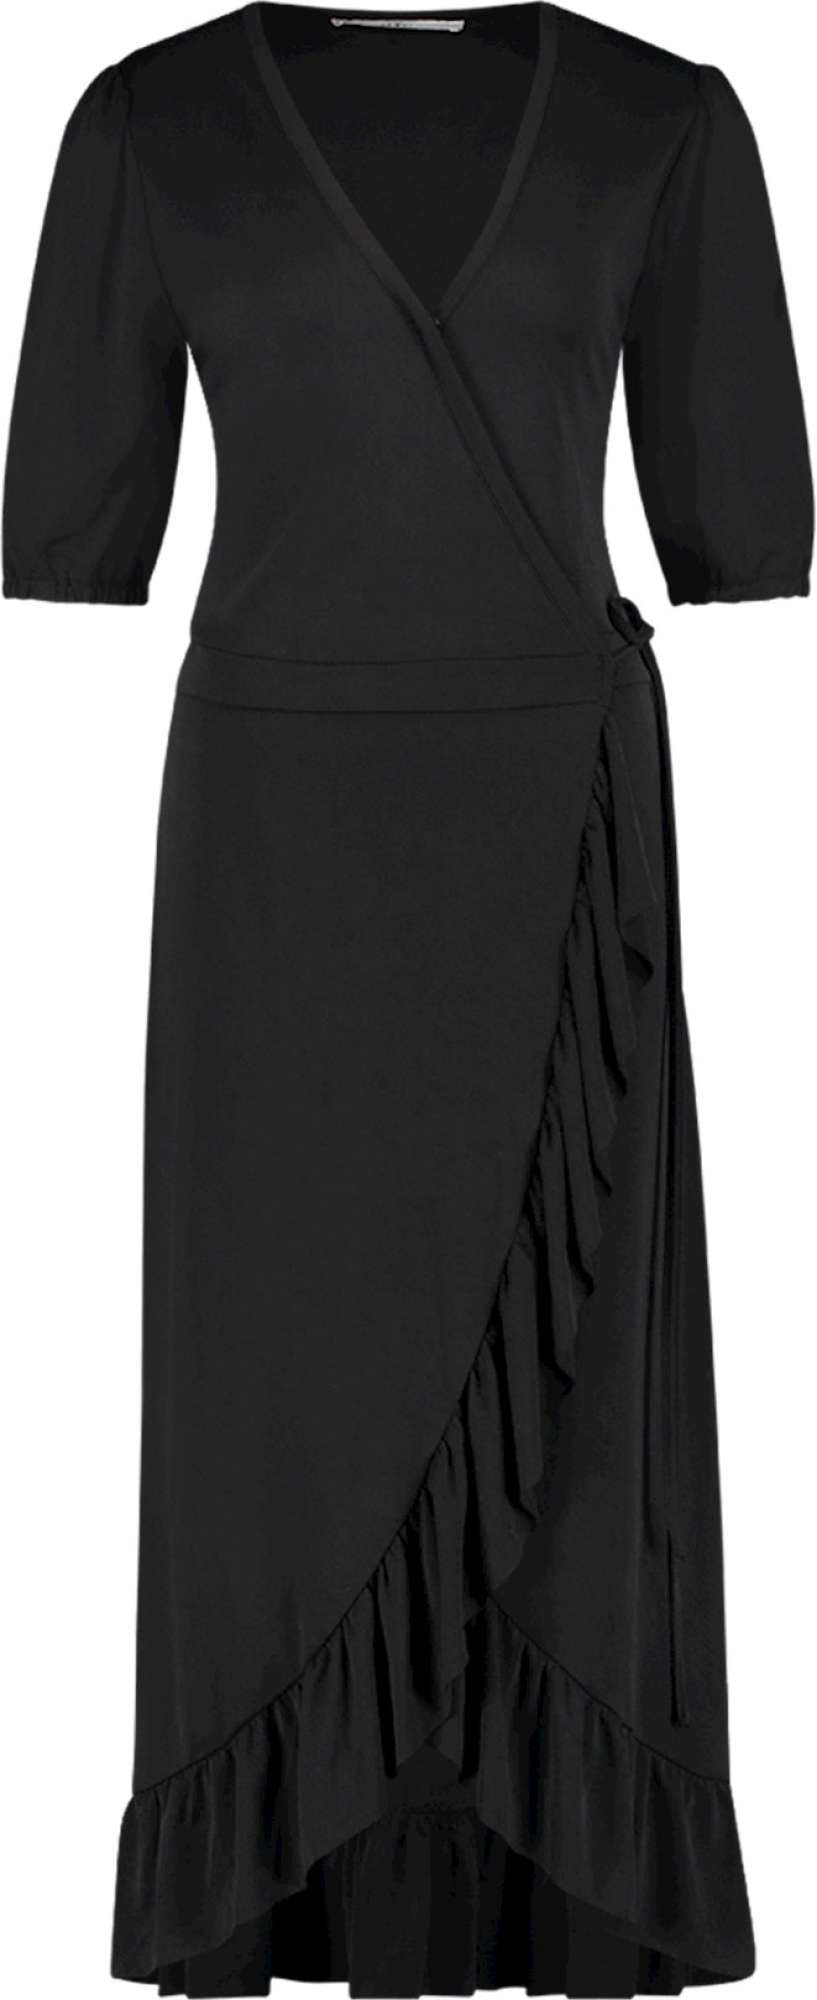 Margit wrapp dress black jersey